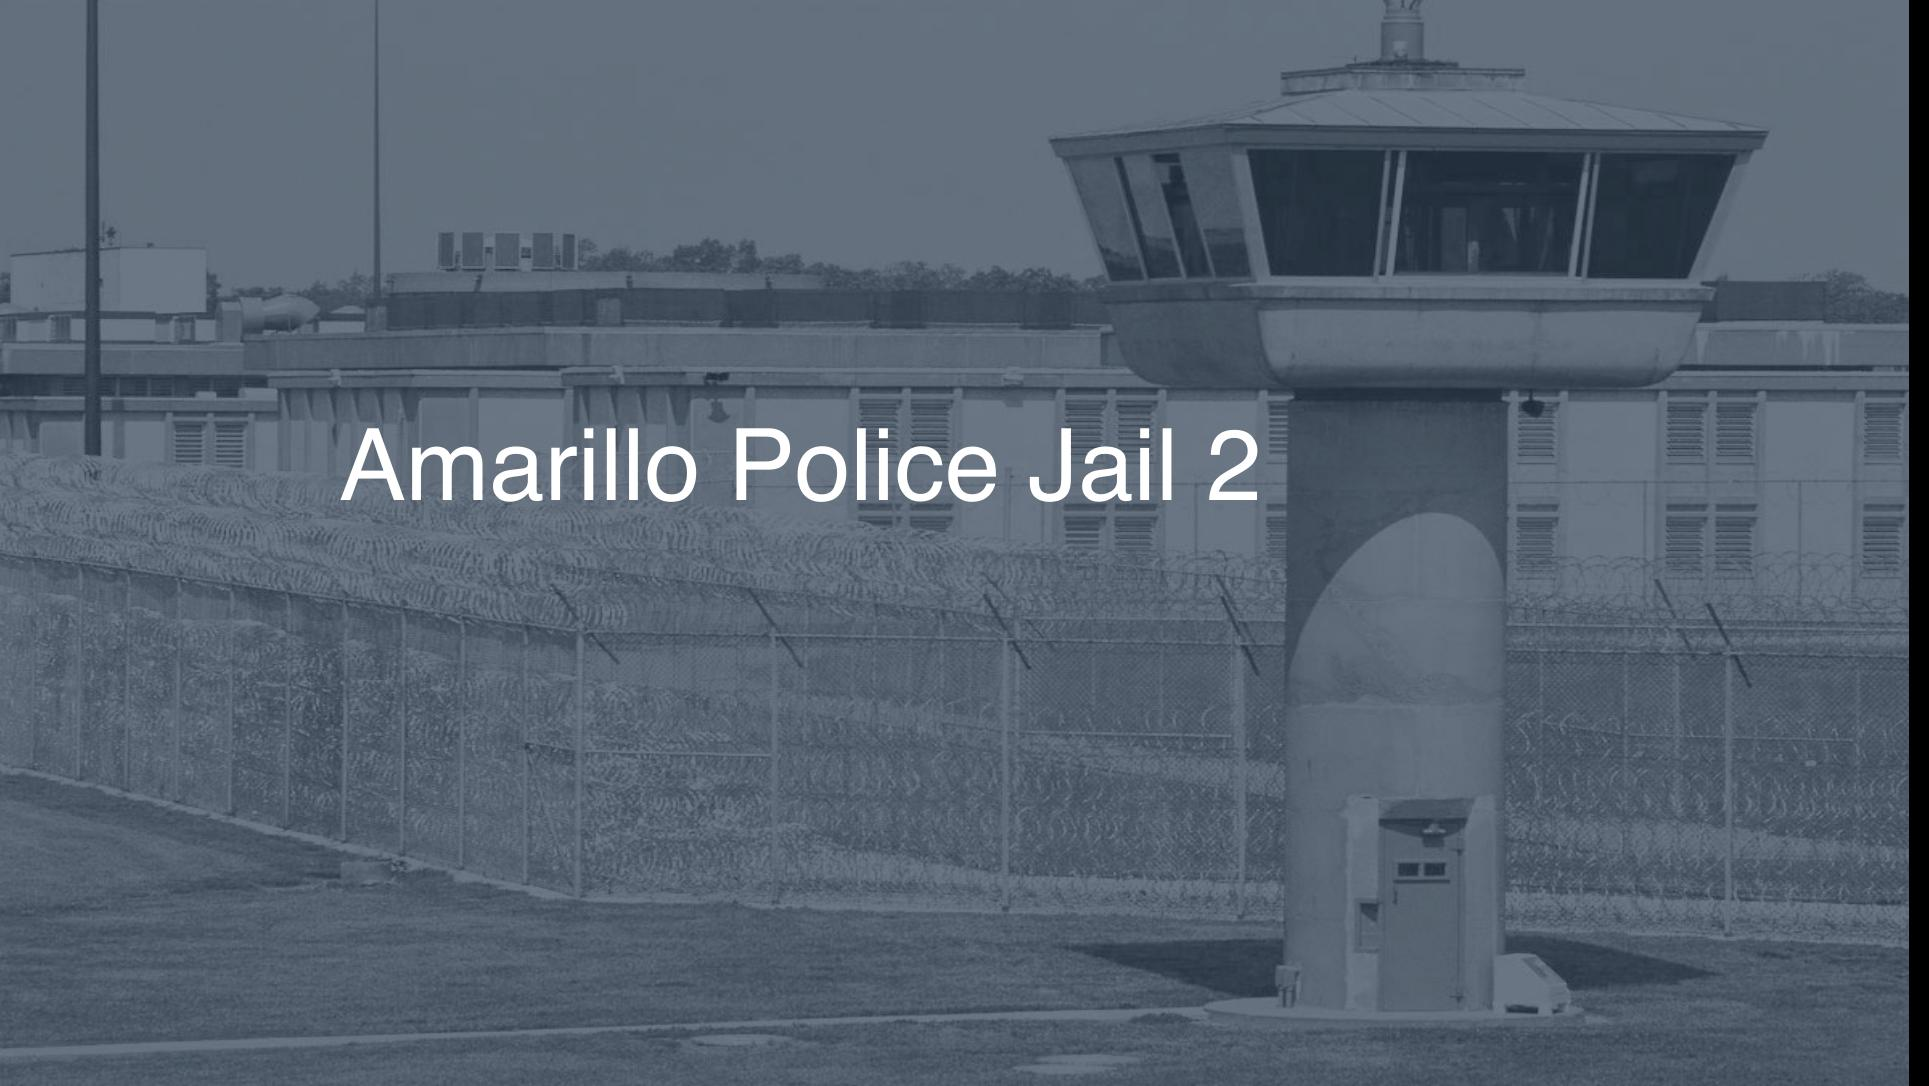 Amarillo Police Jail   Pigeonly - Inmate Search, Locate